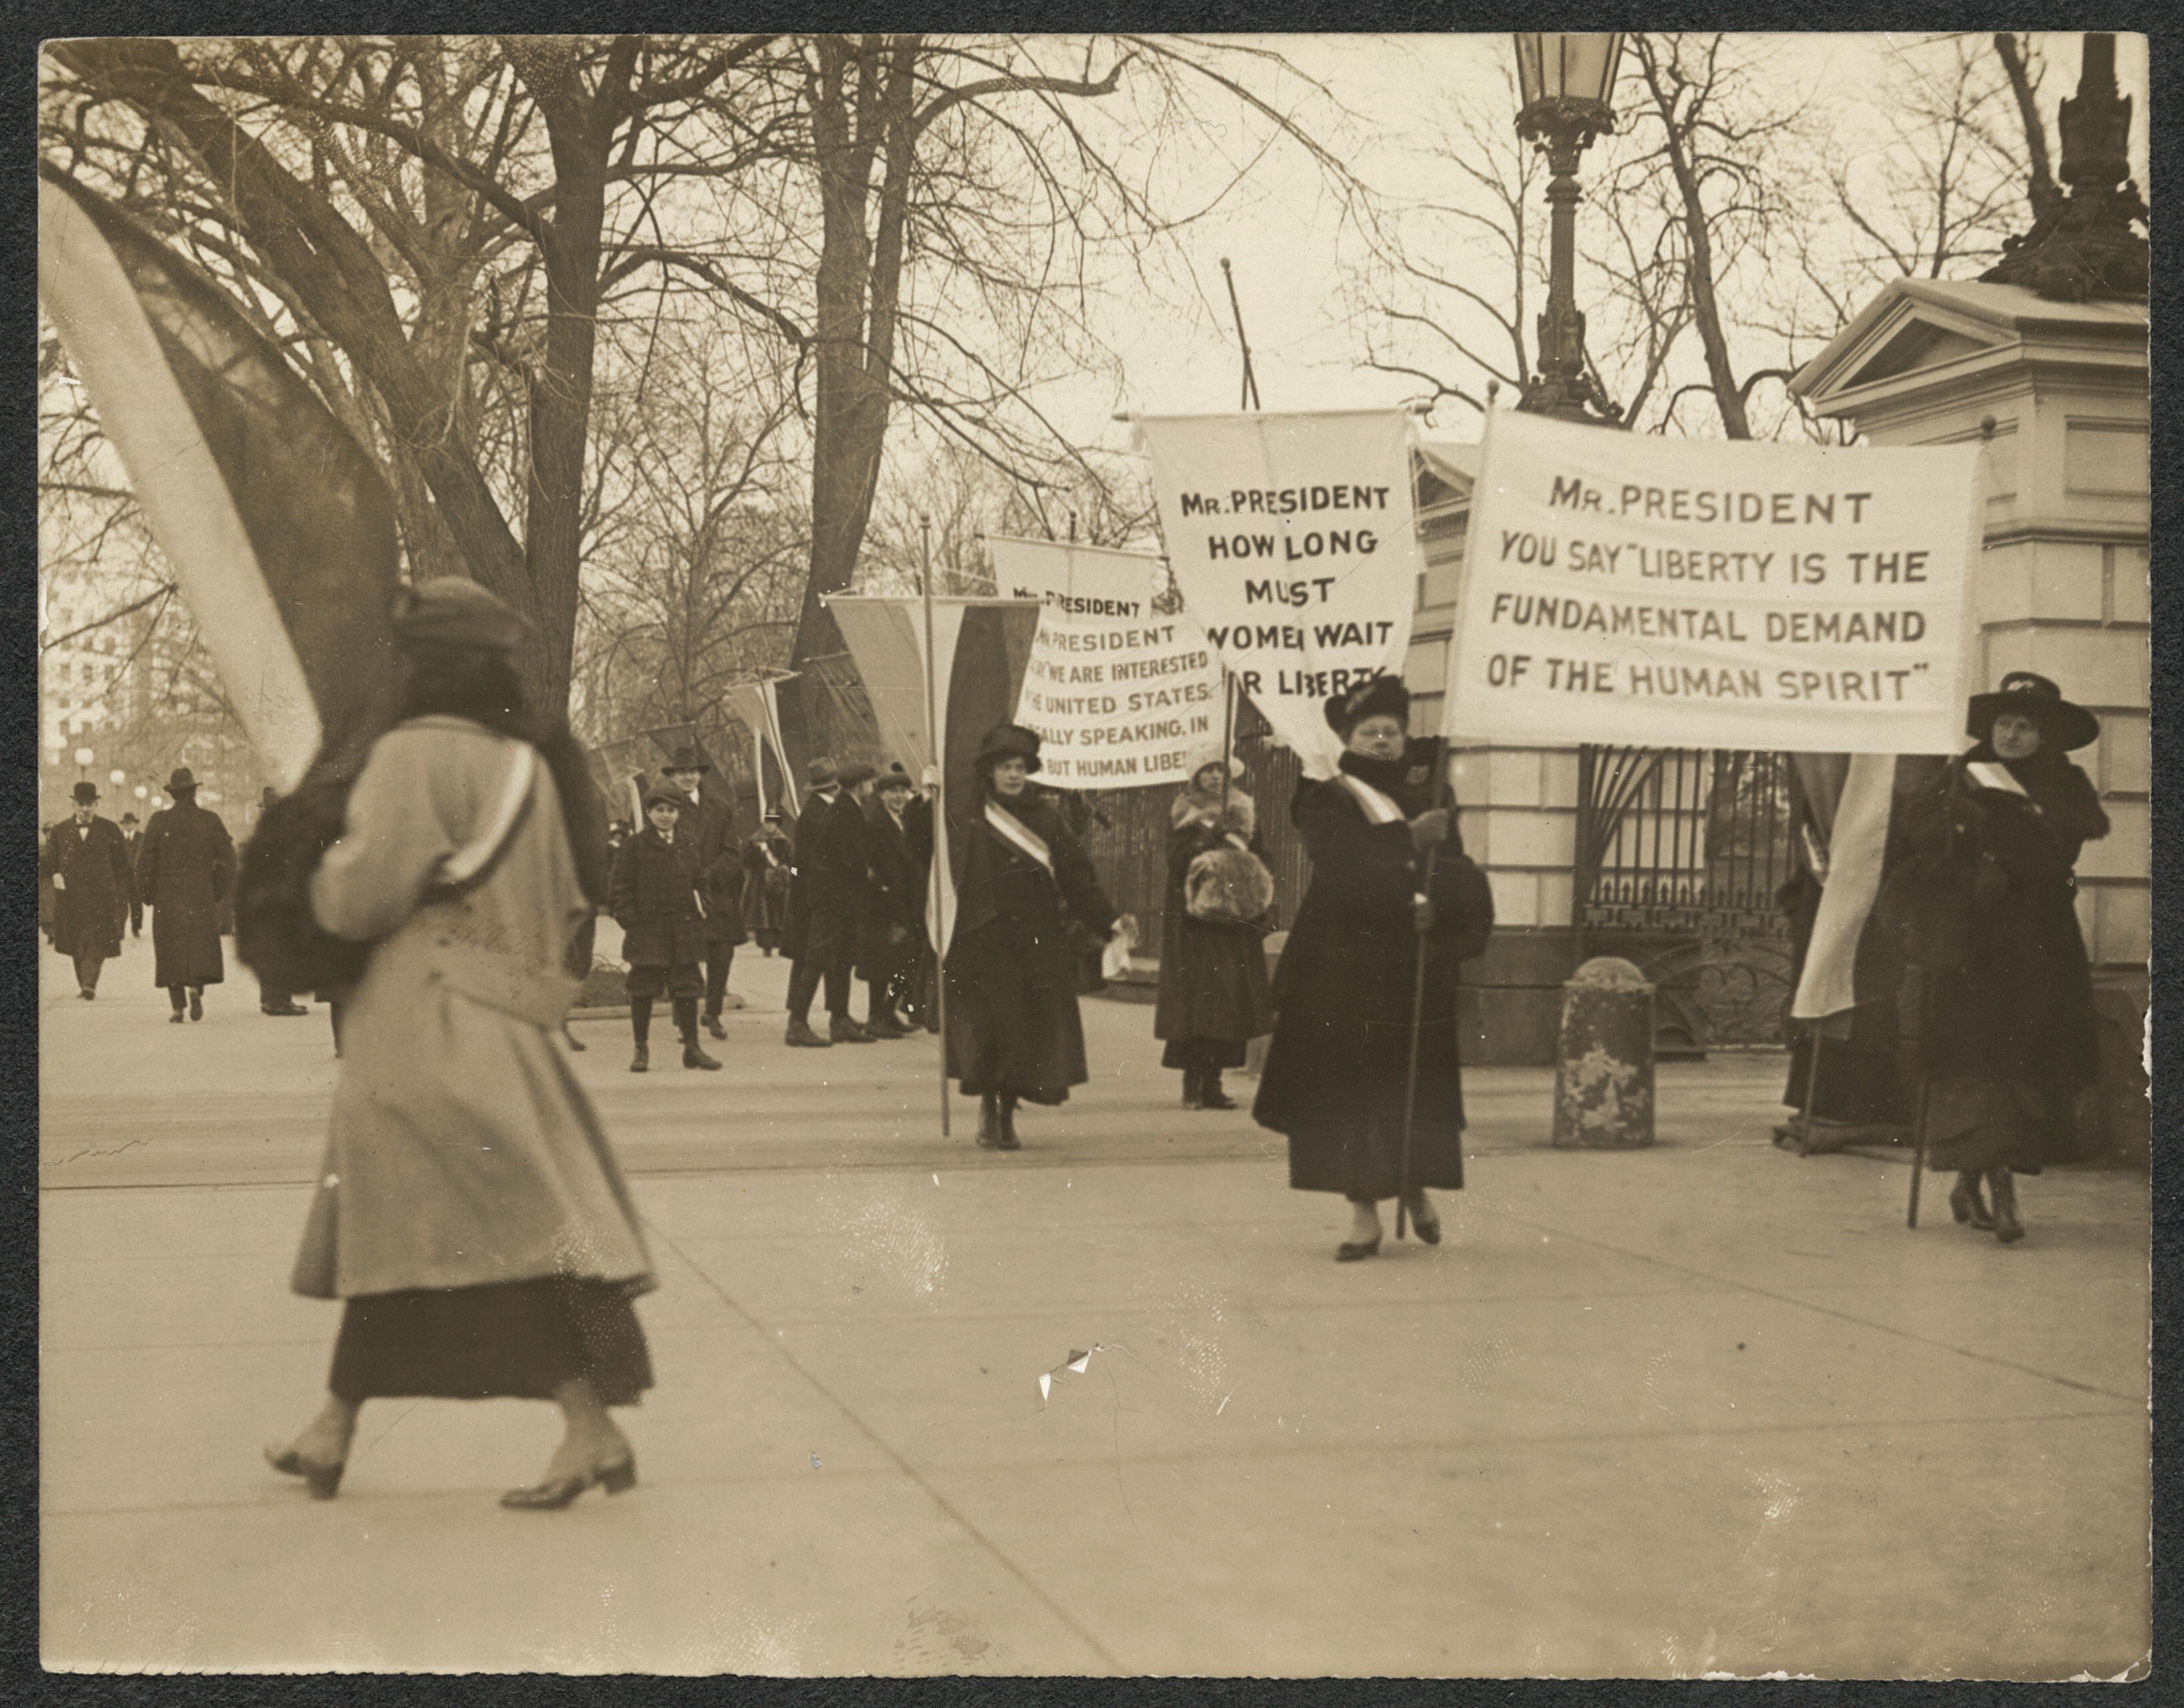 Picketers held signs that directly called upon President Woodrow Wilson to respond to their calls for liberty and democracy. Library of Congress.